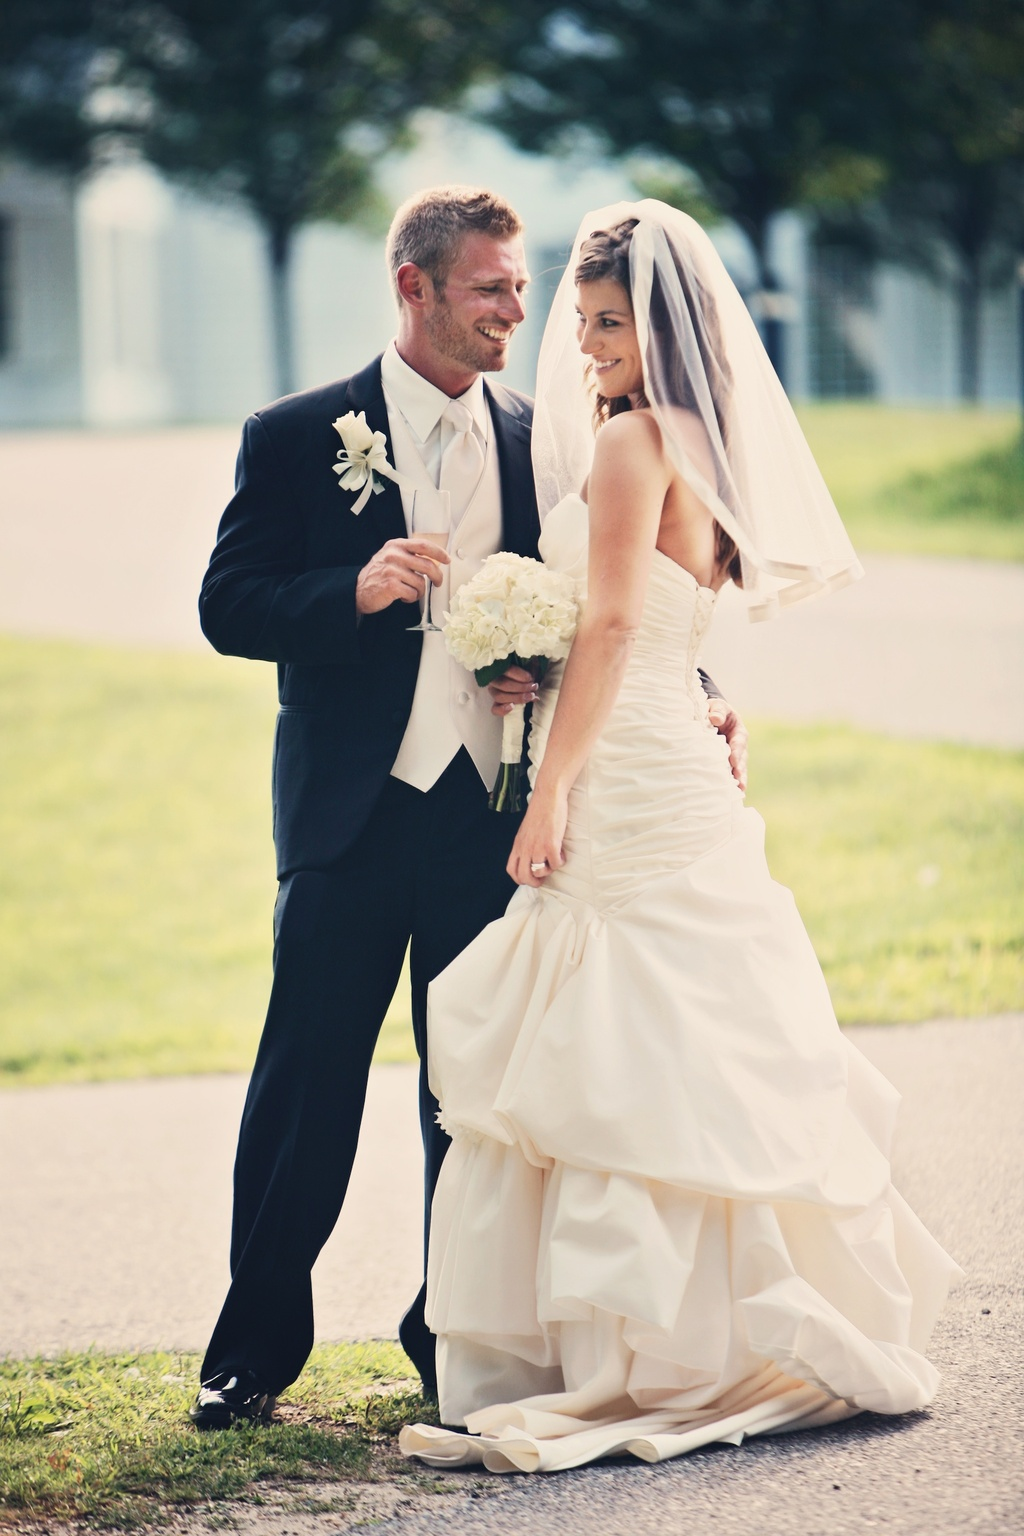 Personalized-real-wedding-planning-inspiration-for-brides-bride-and-groom.full